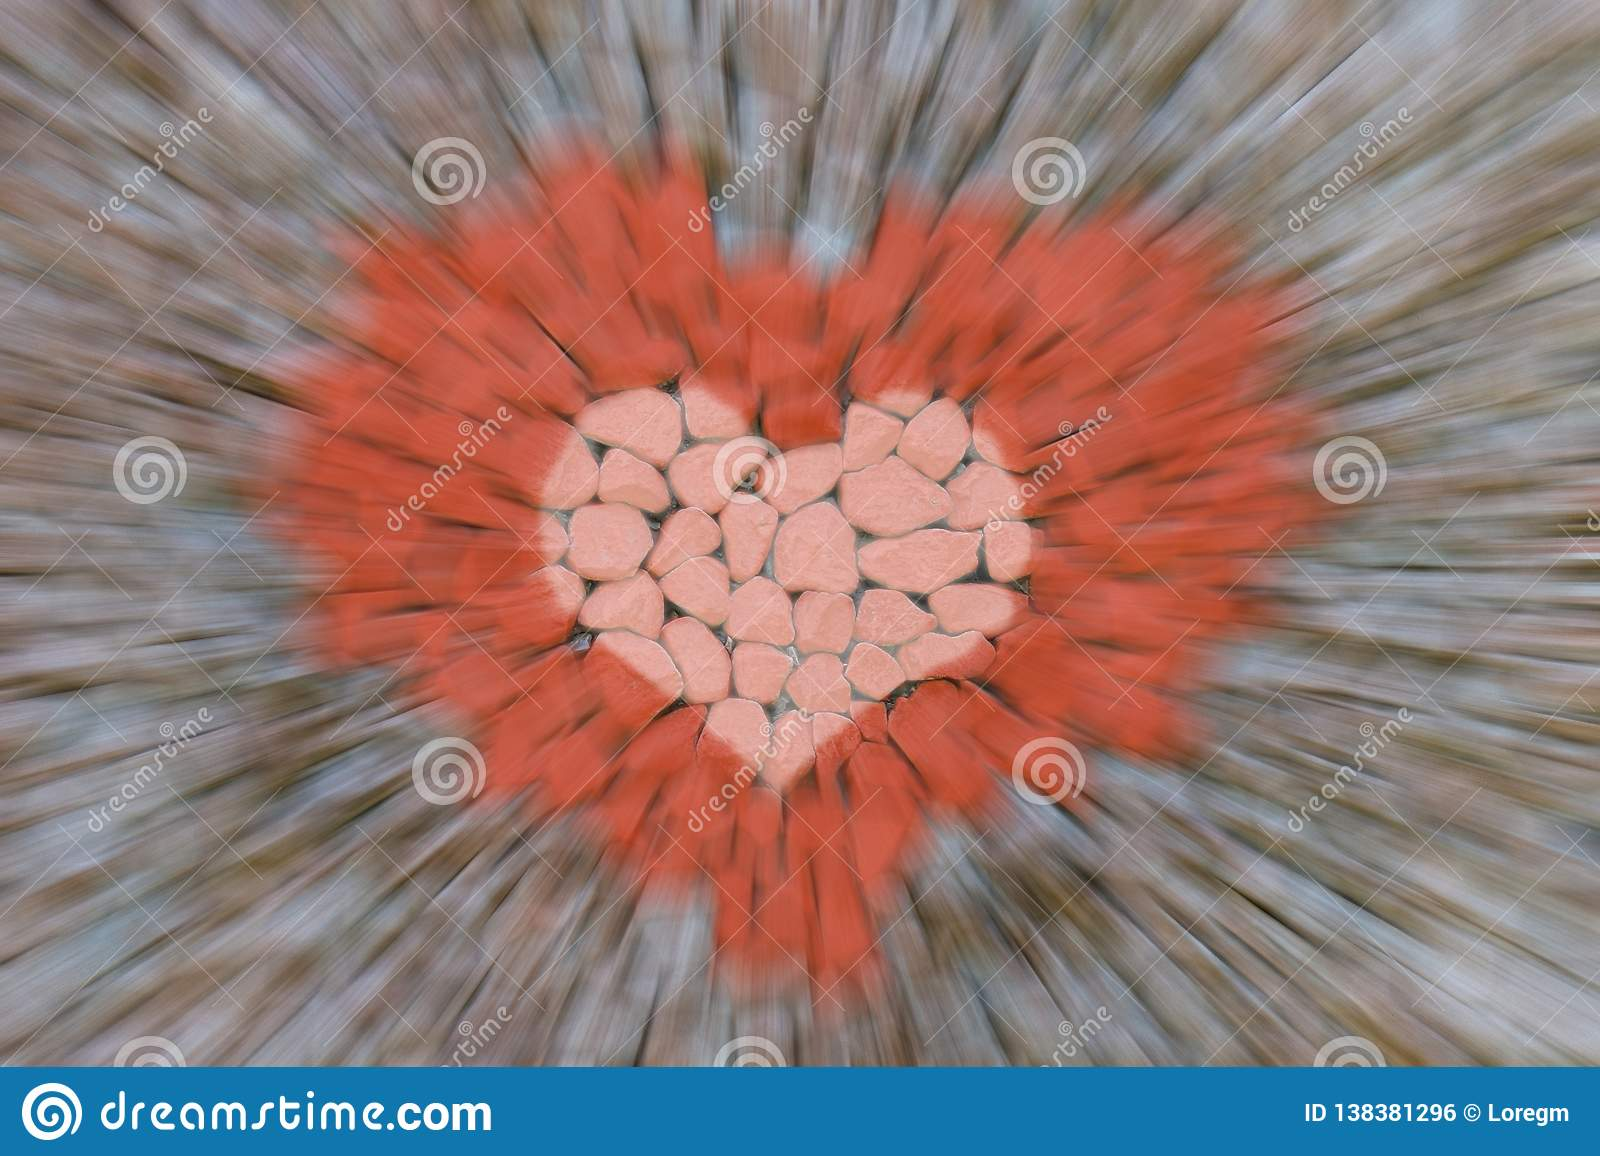 Abstract background acceleration motion blur lines fast approaching red image symbol of love craft design stone